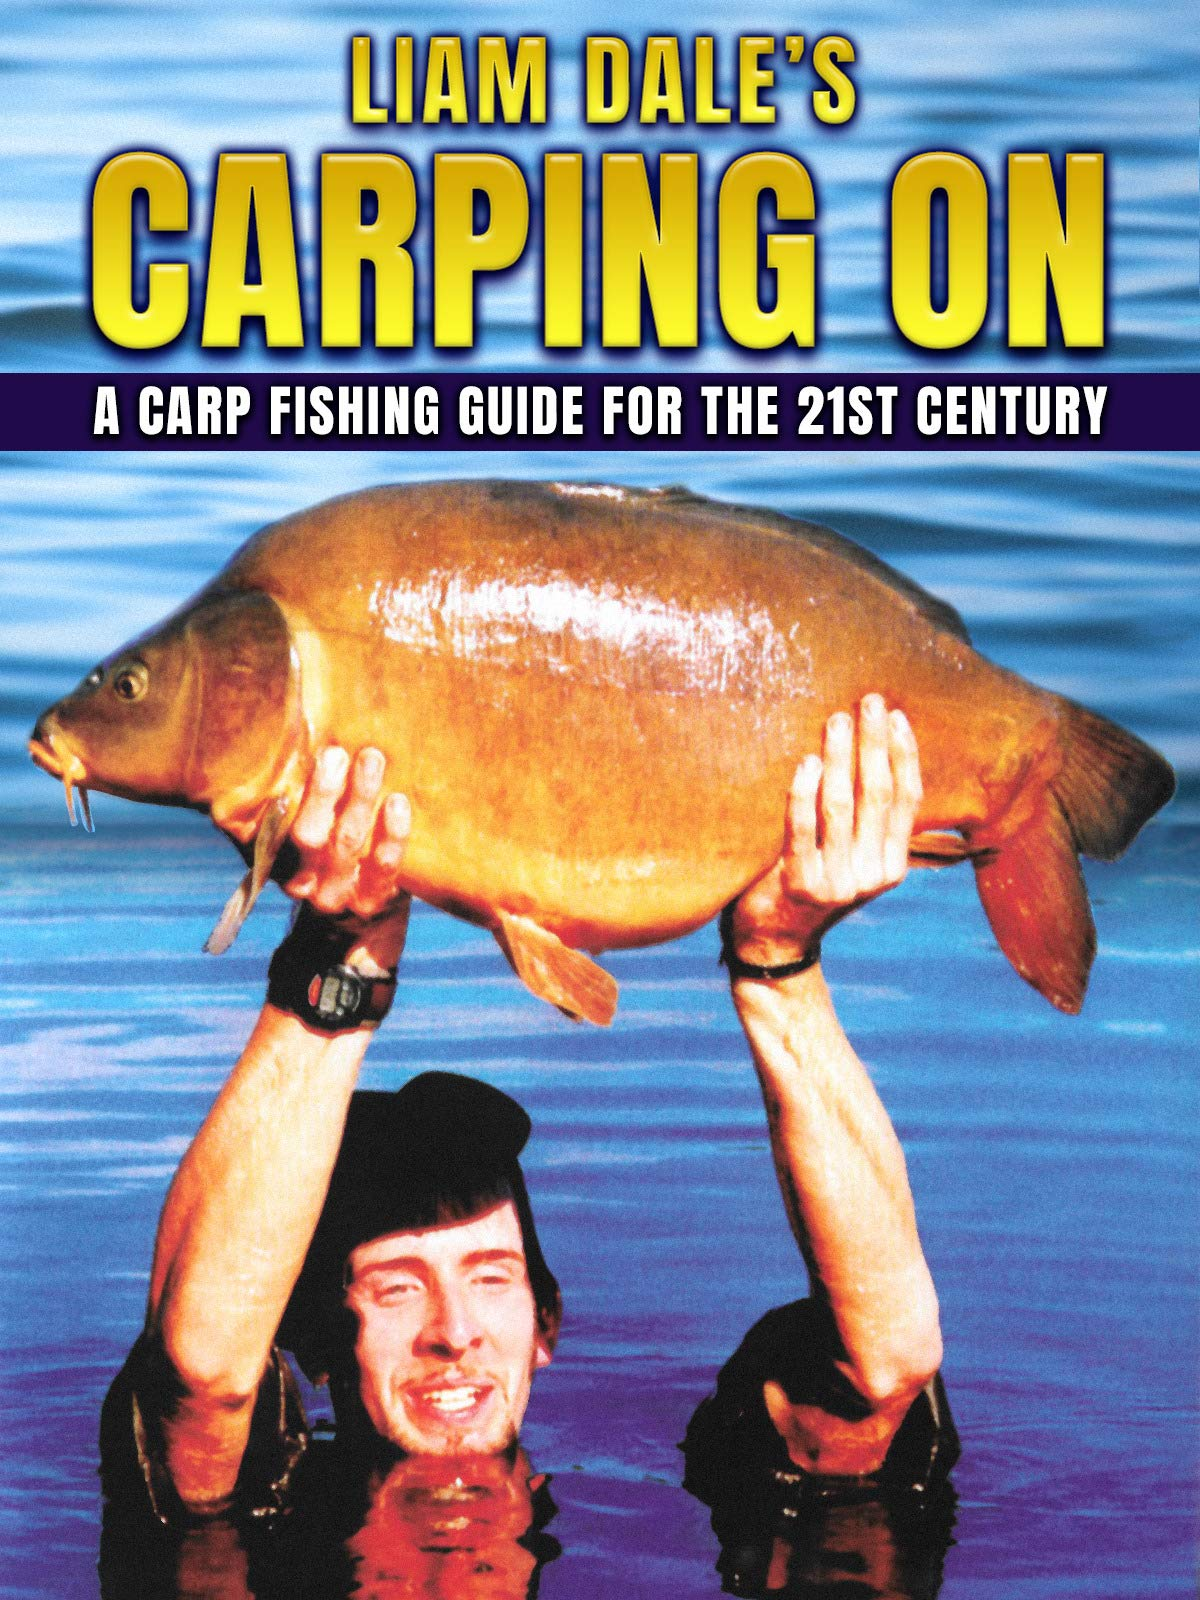 Liam Dale's Carping On: A Carp Fishing Guide for the 21st Century